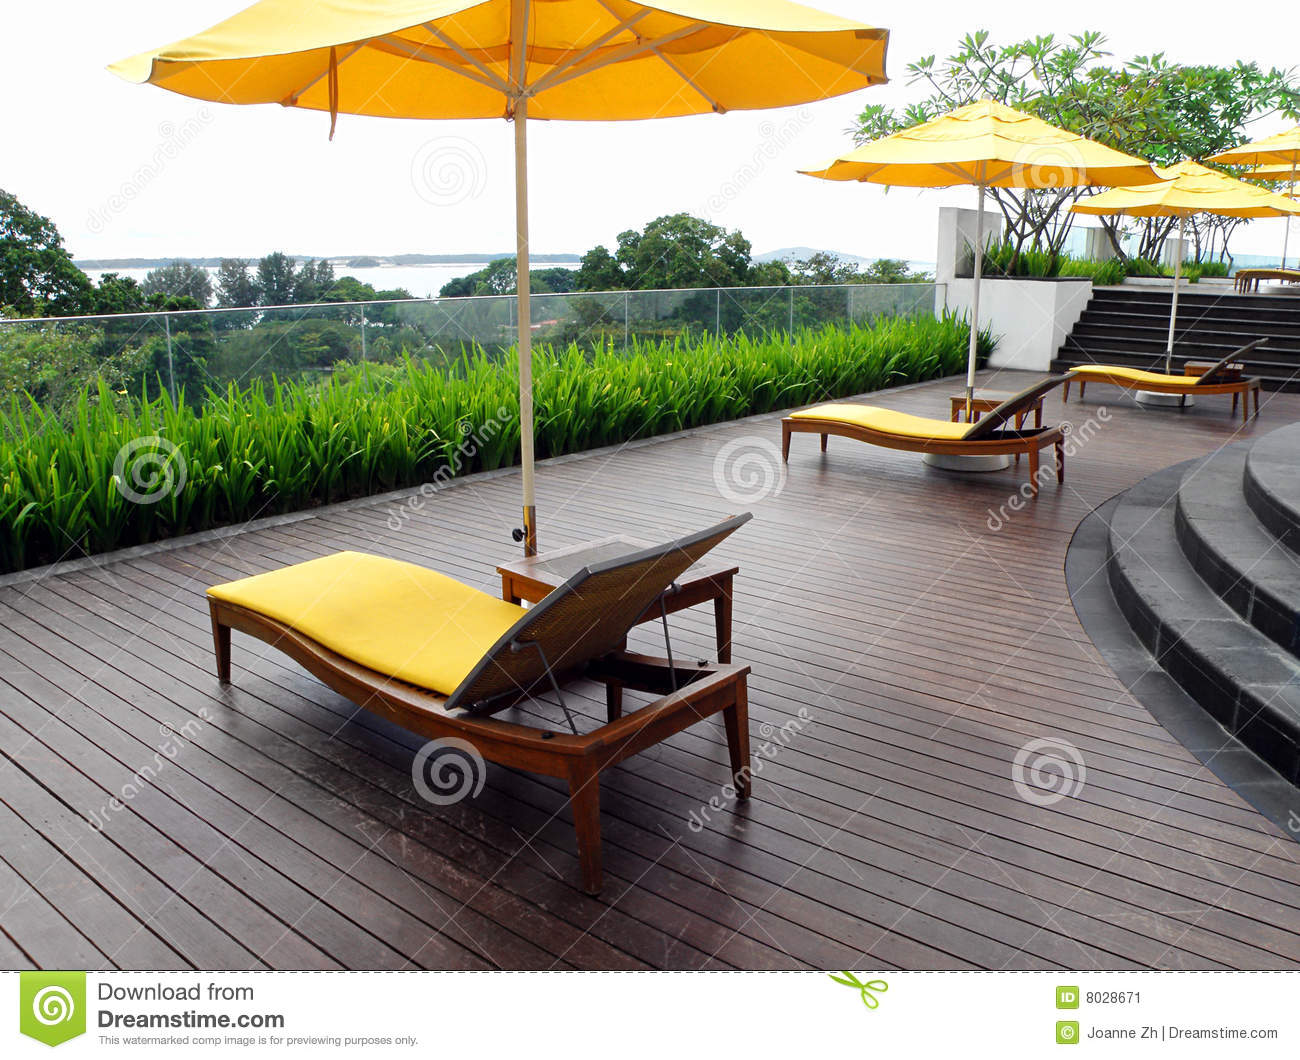 Rooftop Garden Patio Design Stock Image - Image: 8028671